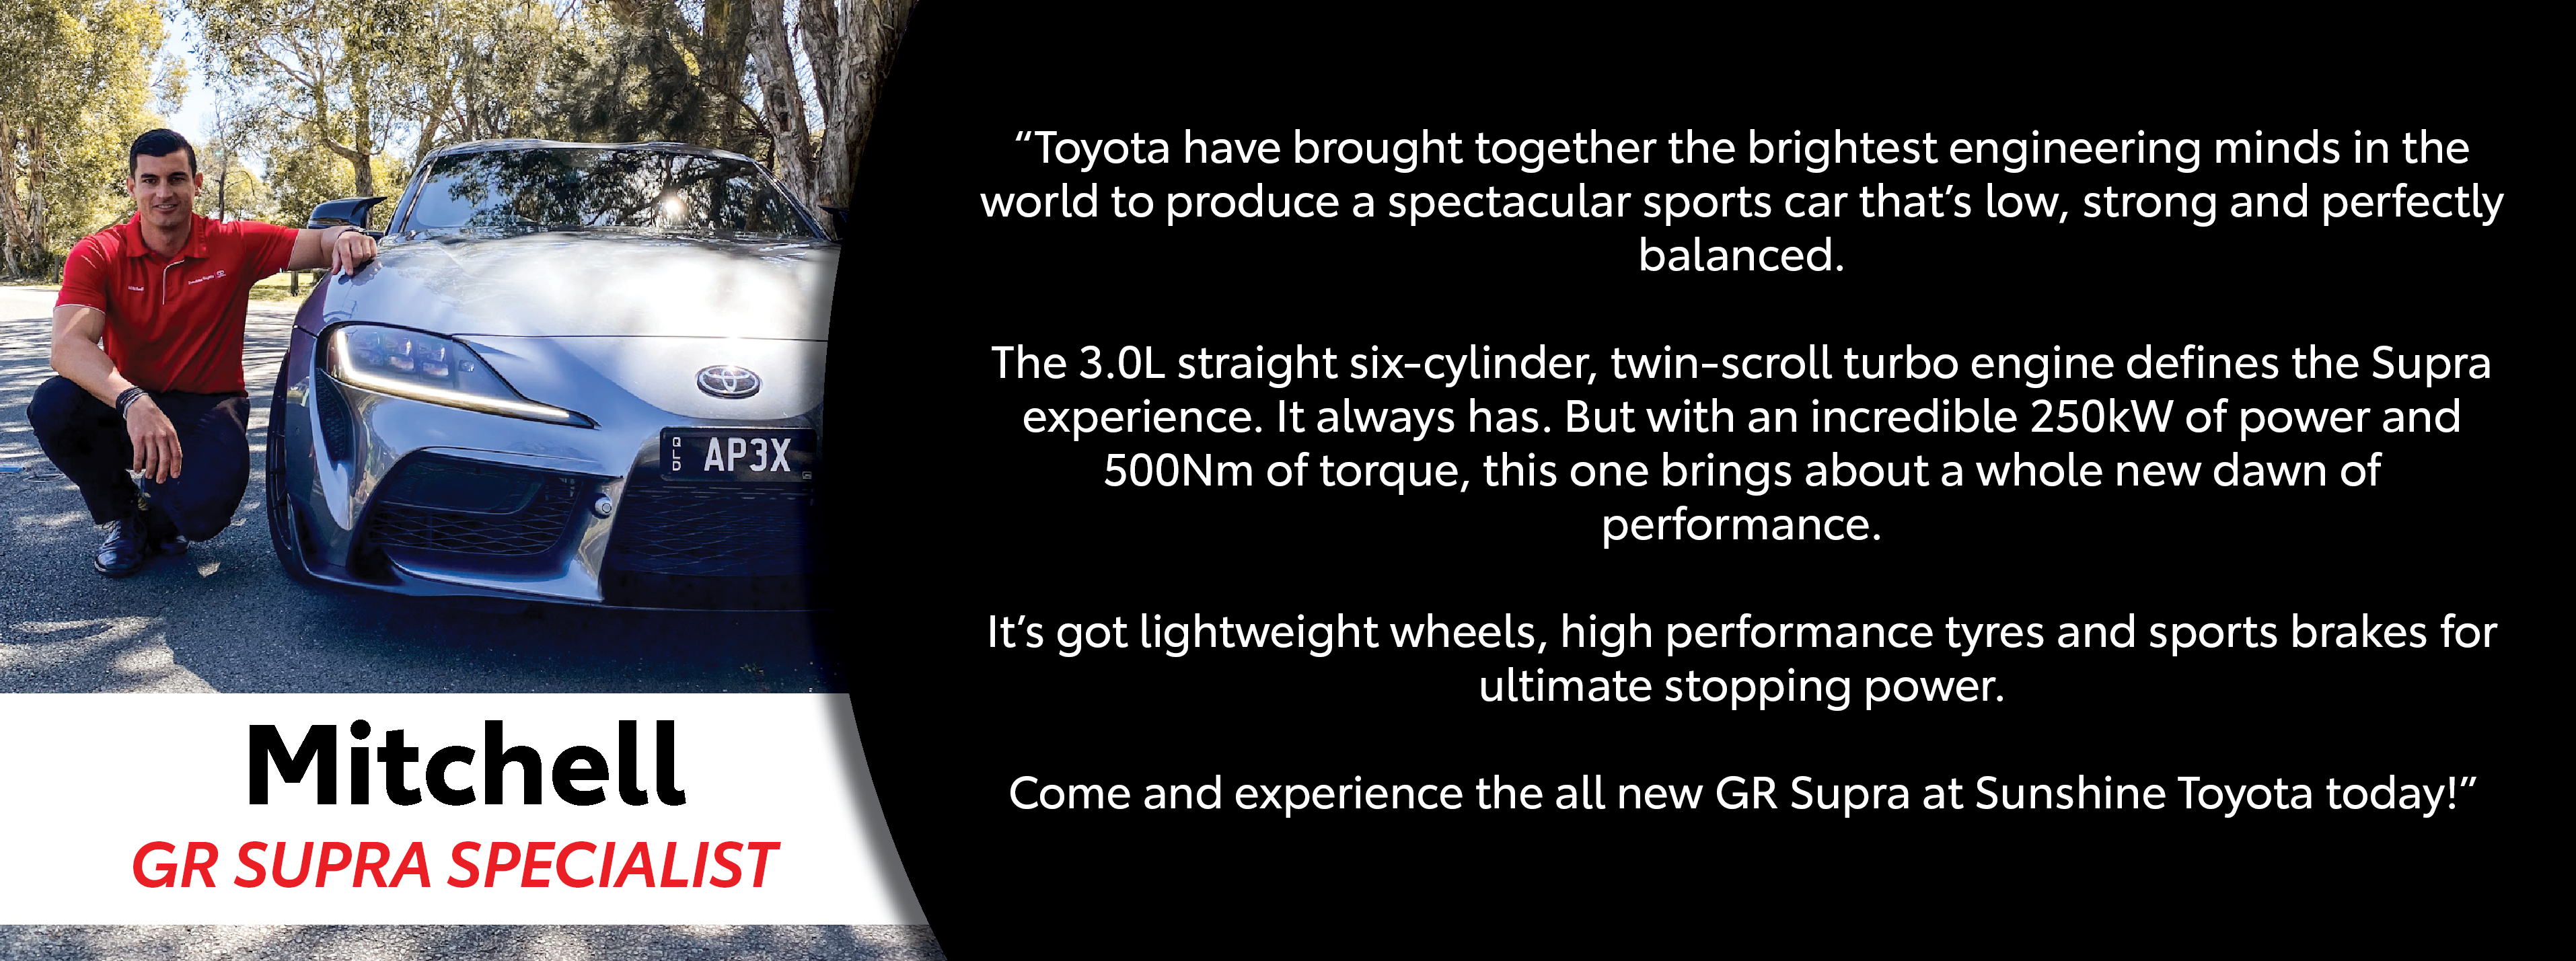 Meet Mitchell - our GR Supra Specialist at Sunshine Toyota on the Sunshine Coast!